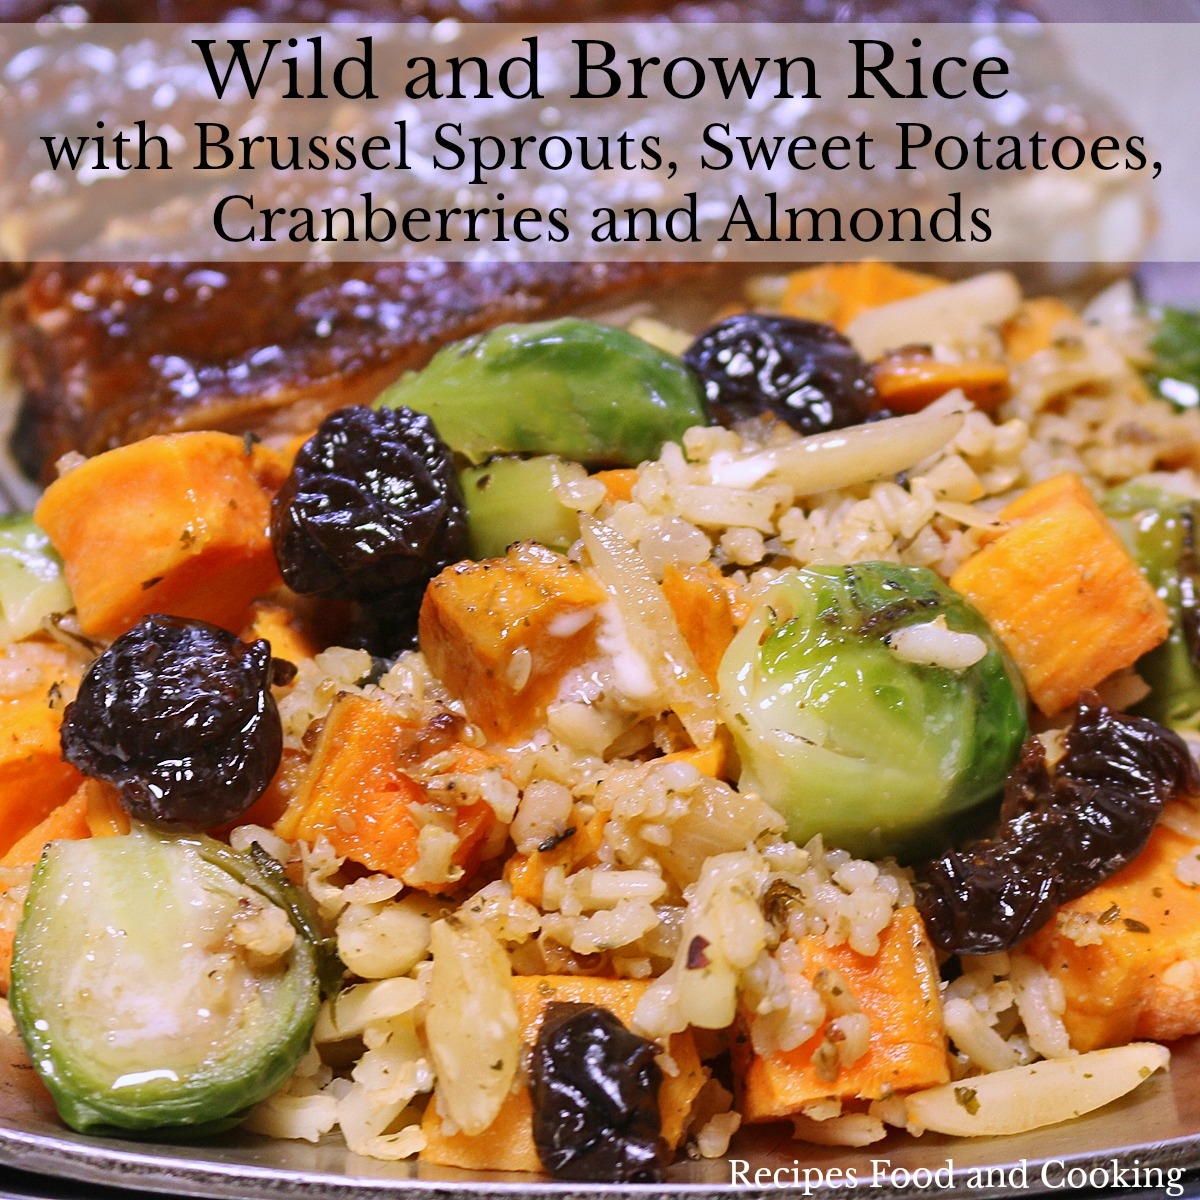 Wild and Brown Rice with Brussel Sprouts, Sweet Potatoes, Cranberries and Almonds